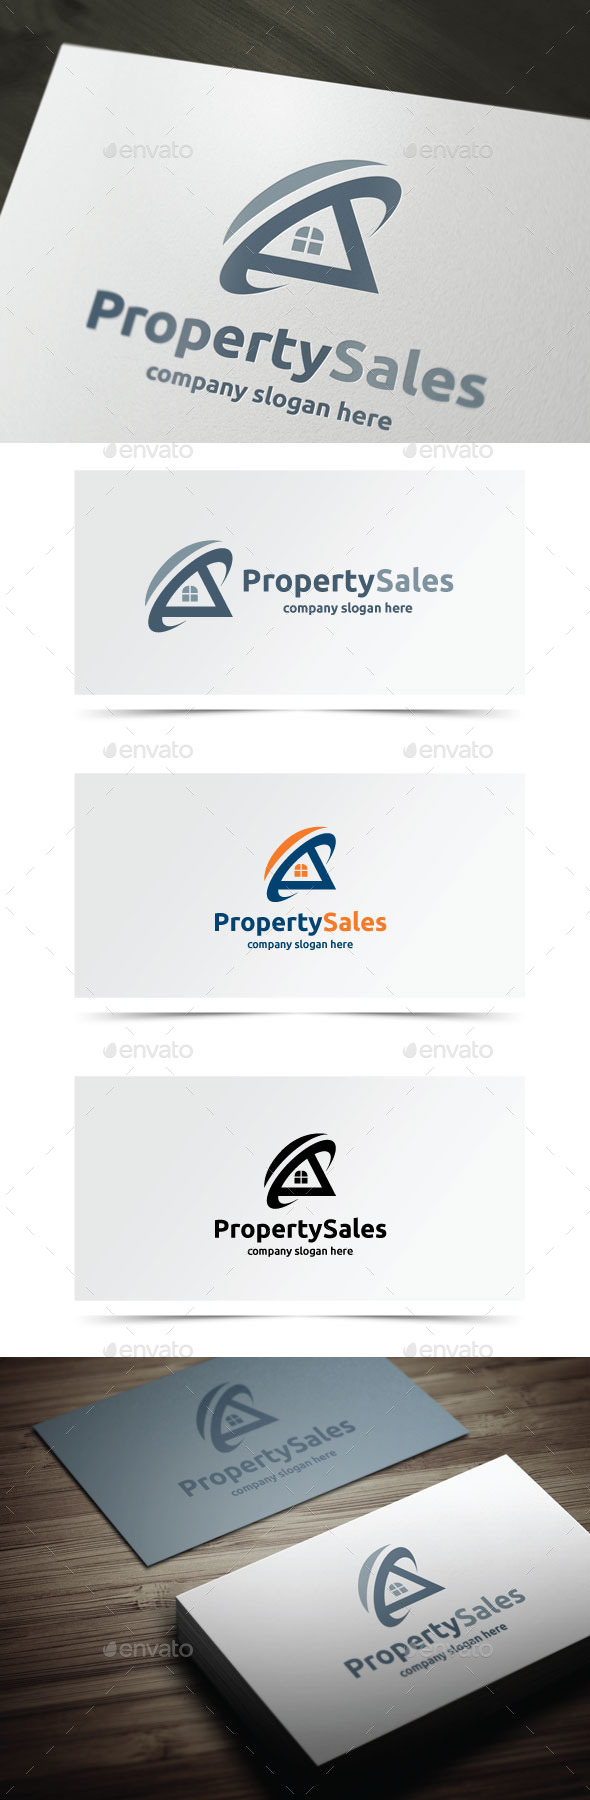 Property Sales - Buildings Logo Templates